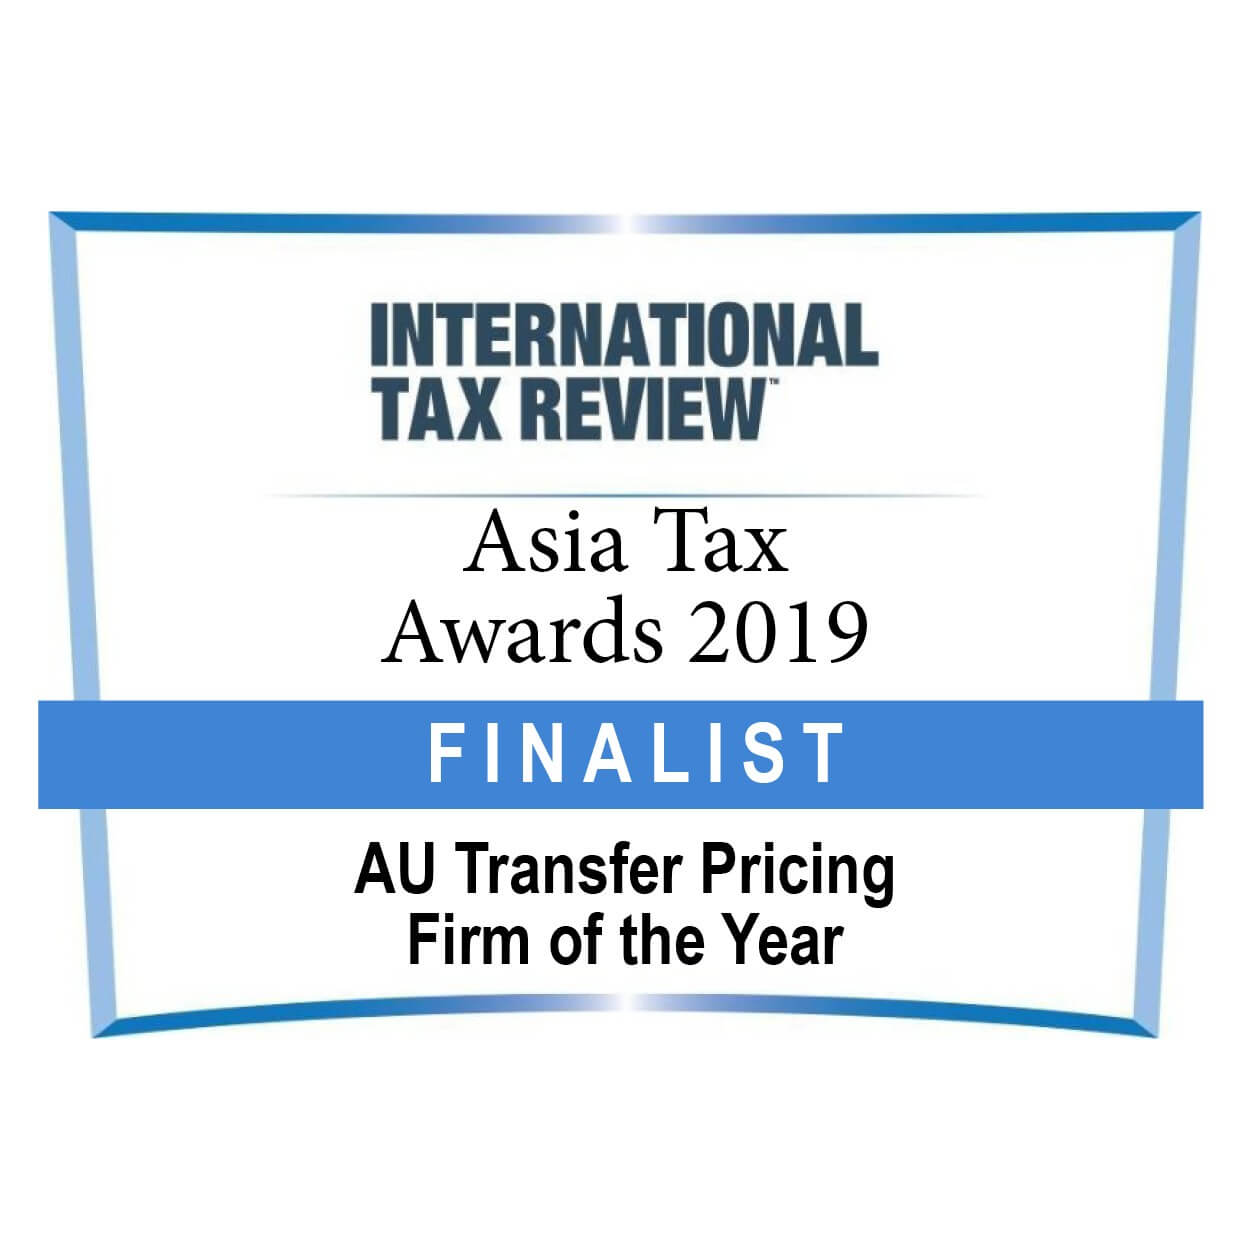 AU TP firm of the Year Asia Tax Awards FINALIST 2019